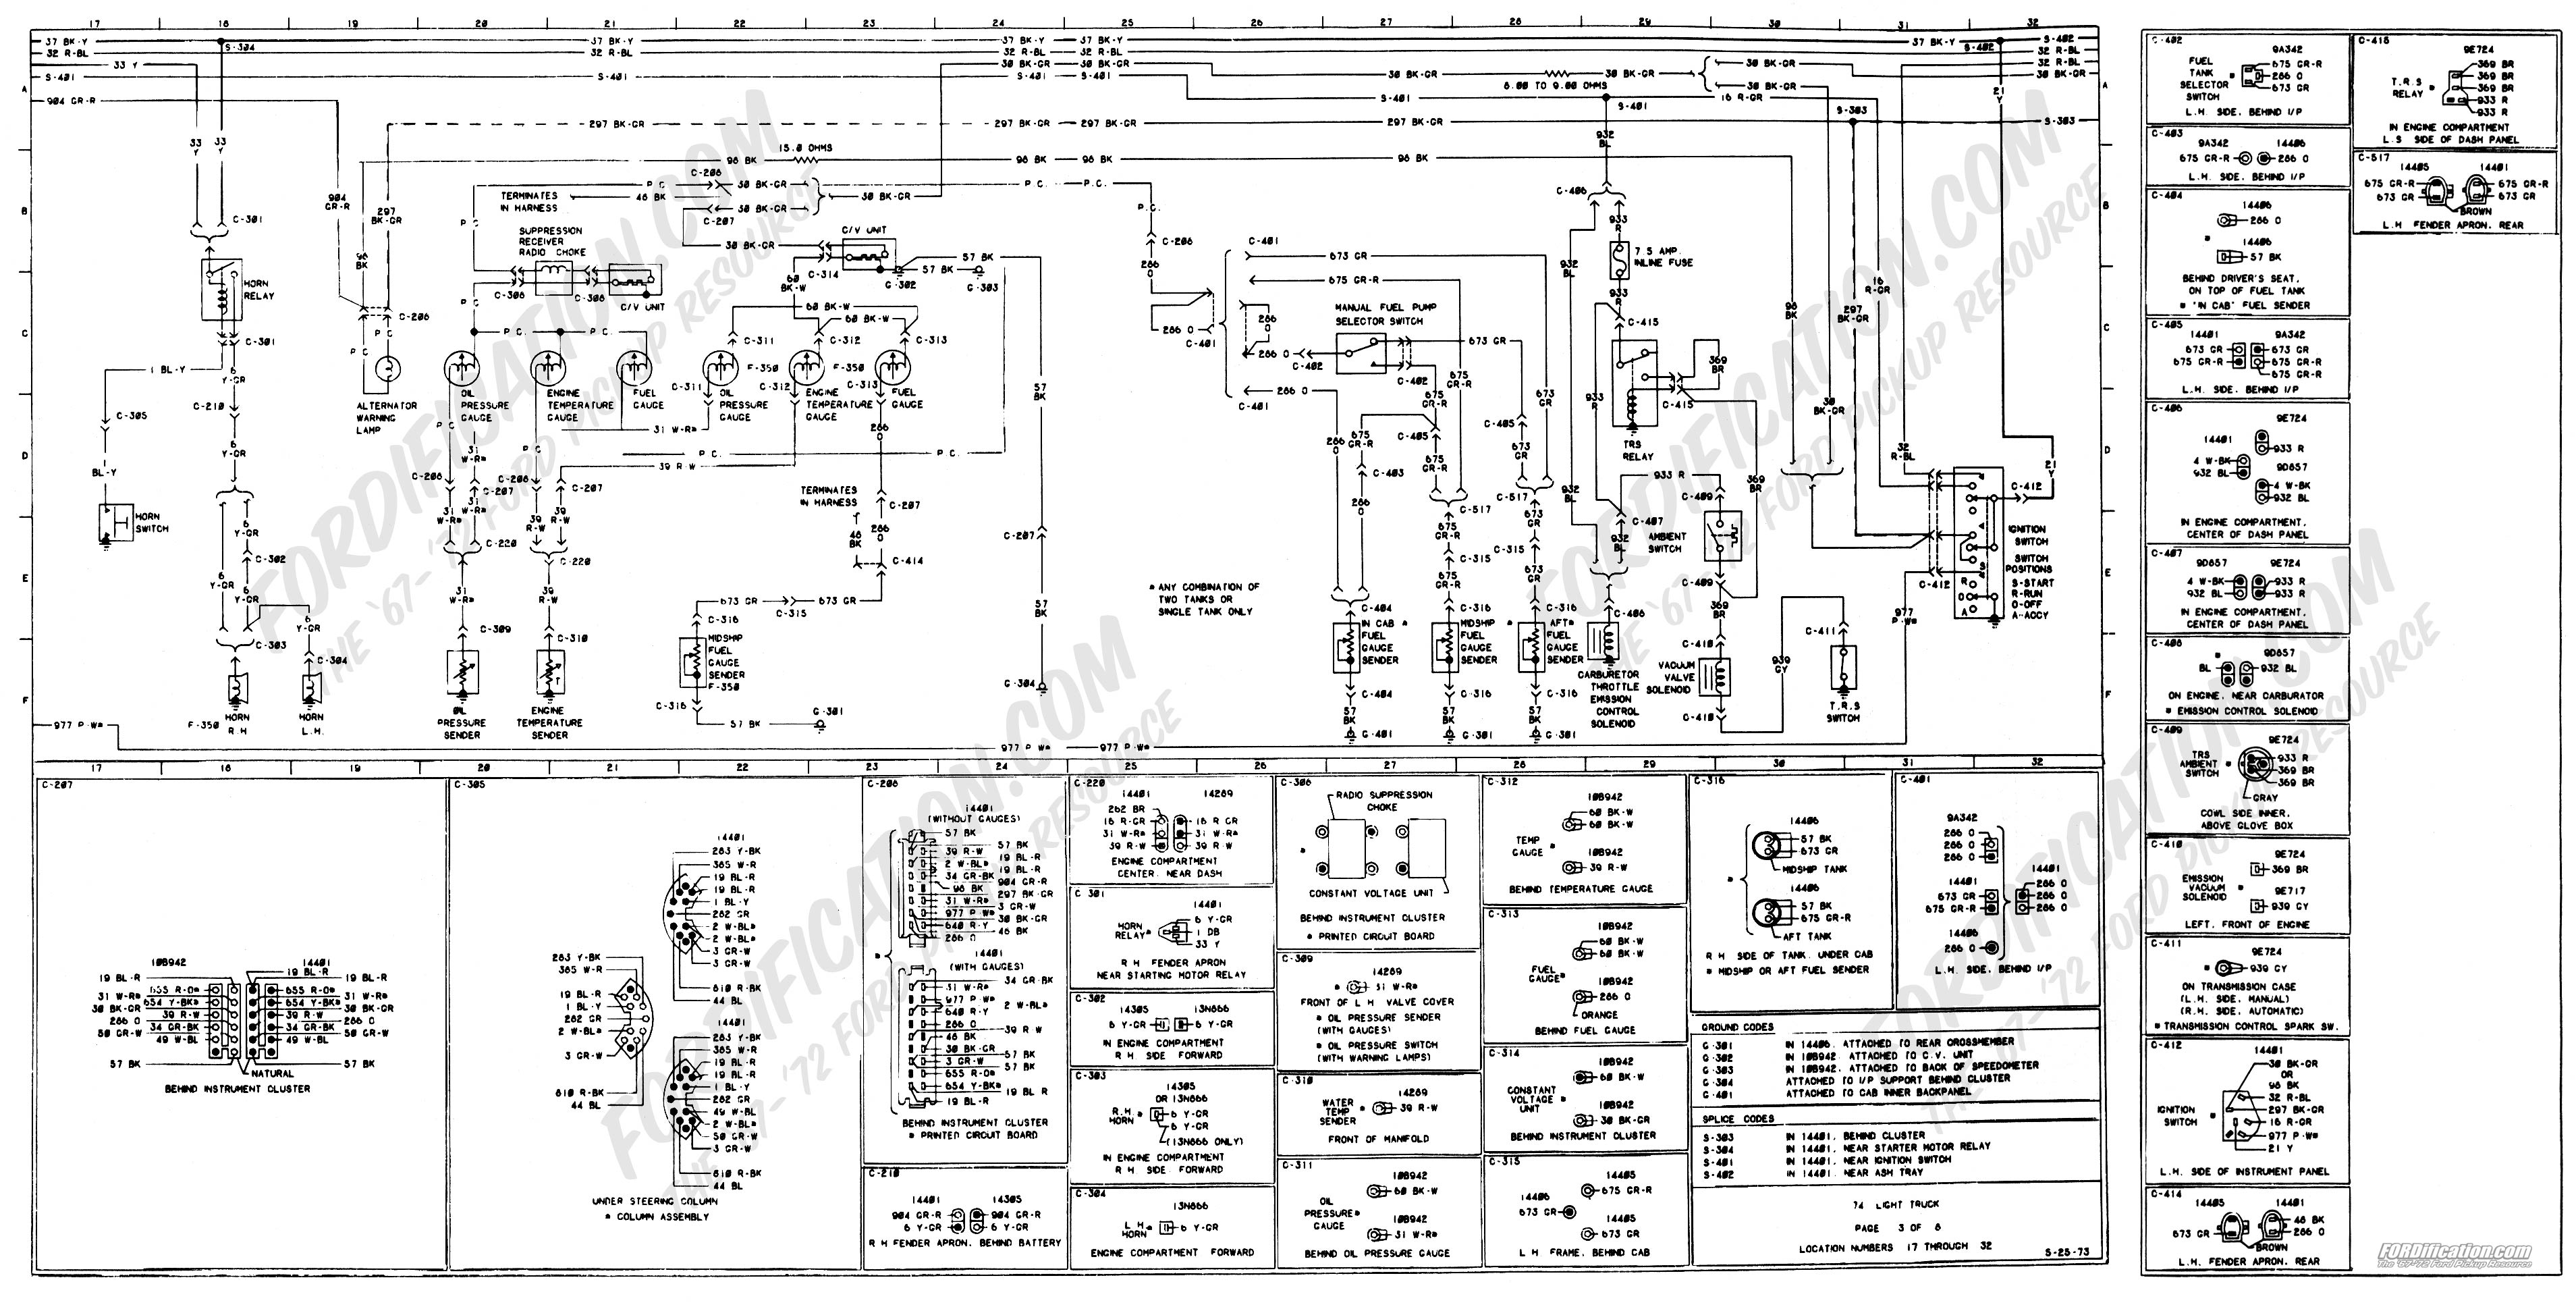 Ford F350 Wiring Blog About Diagrams 2010 F150 Trailer Diagram 1973 1979 Truck Schematics Fordification Net Fault On